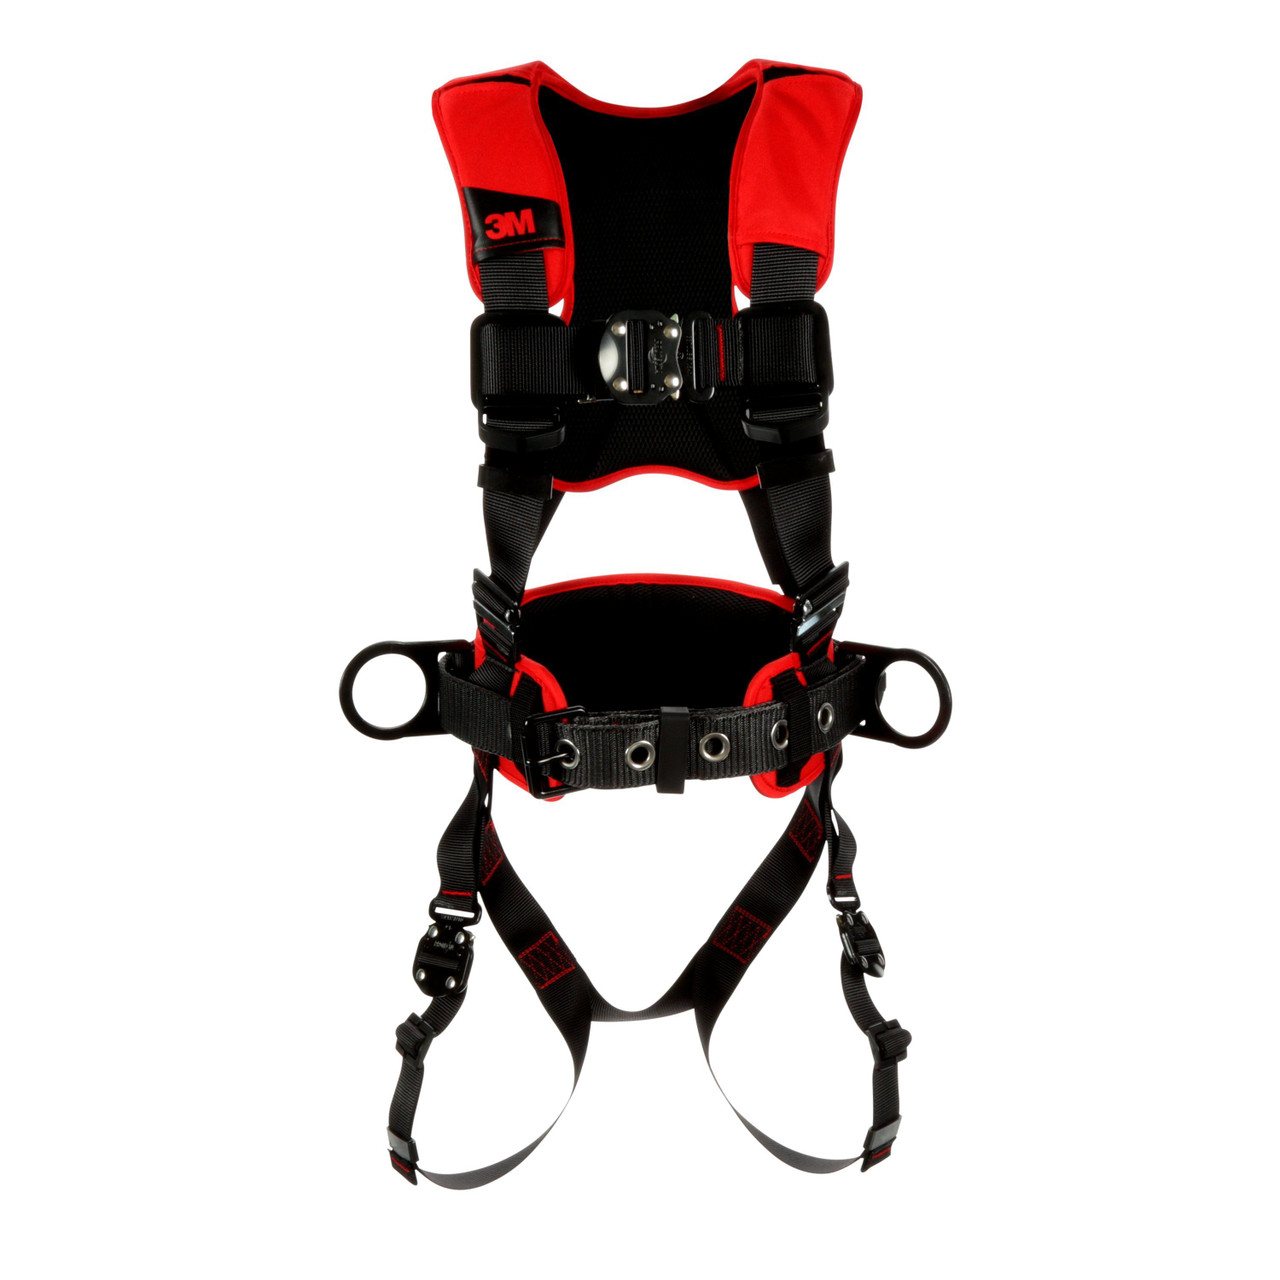 3M™ Protecta® Comfort Construction Style Positioning Harness